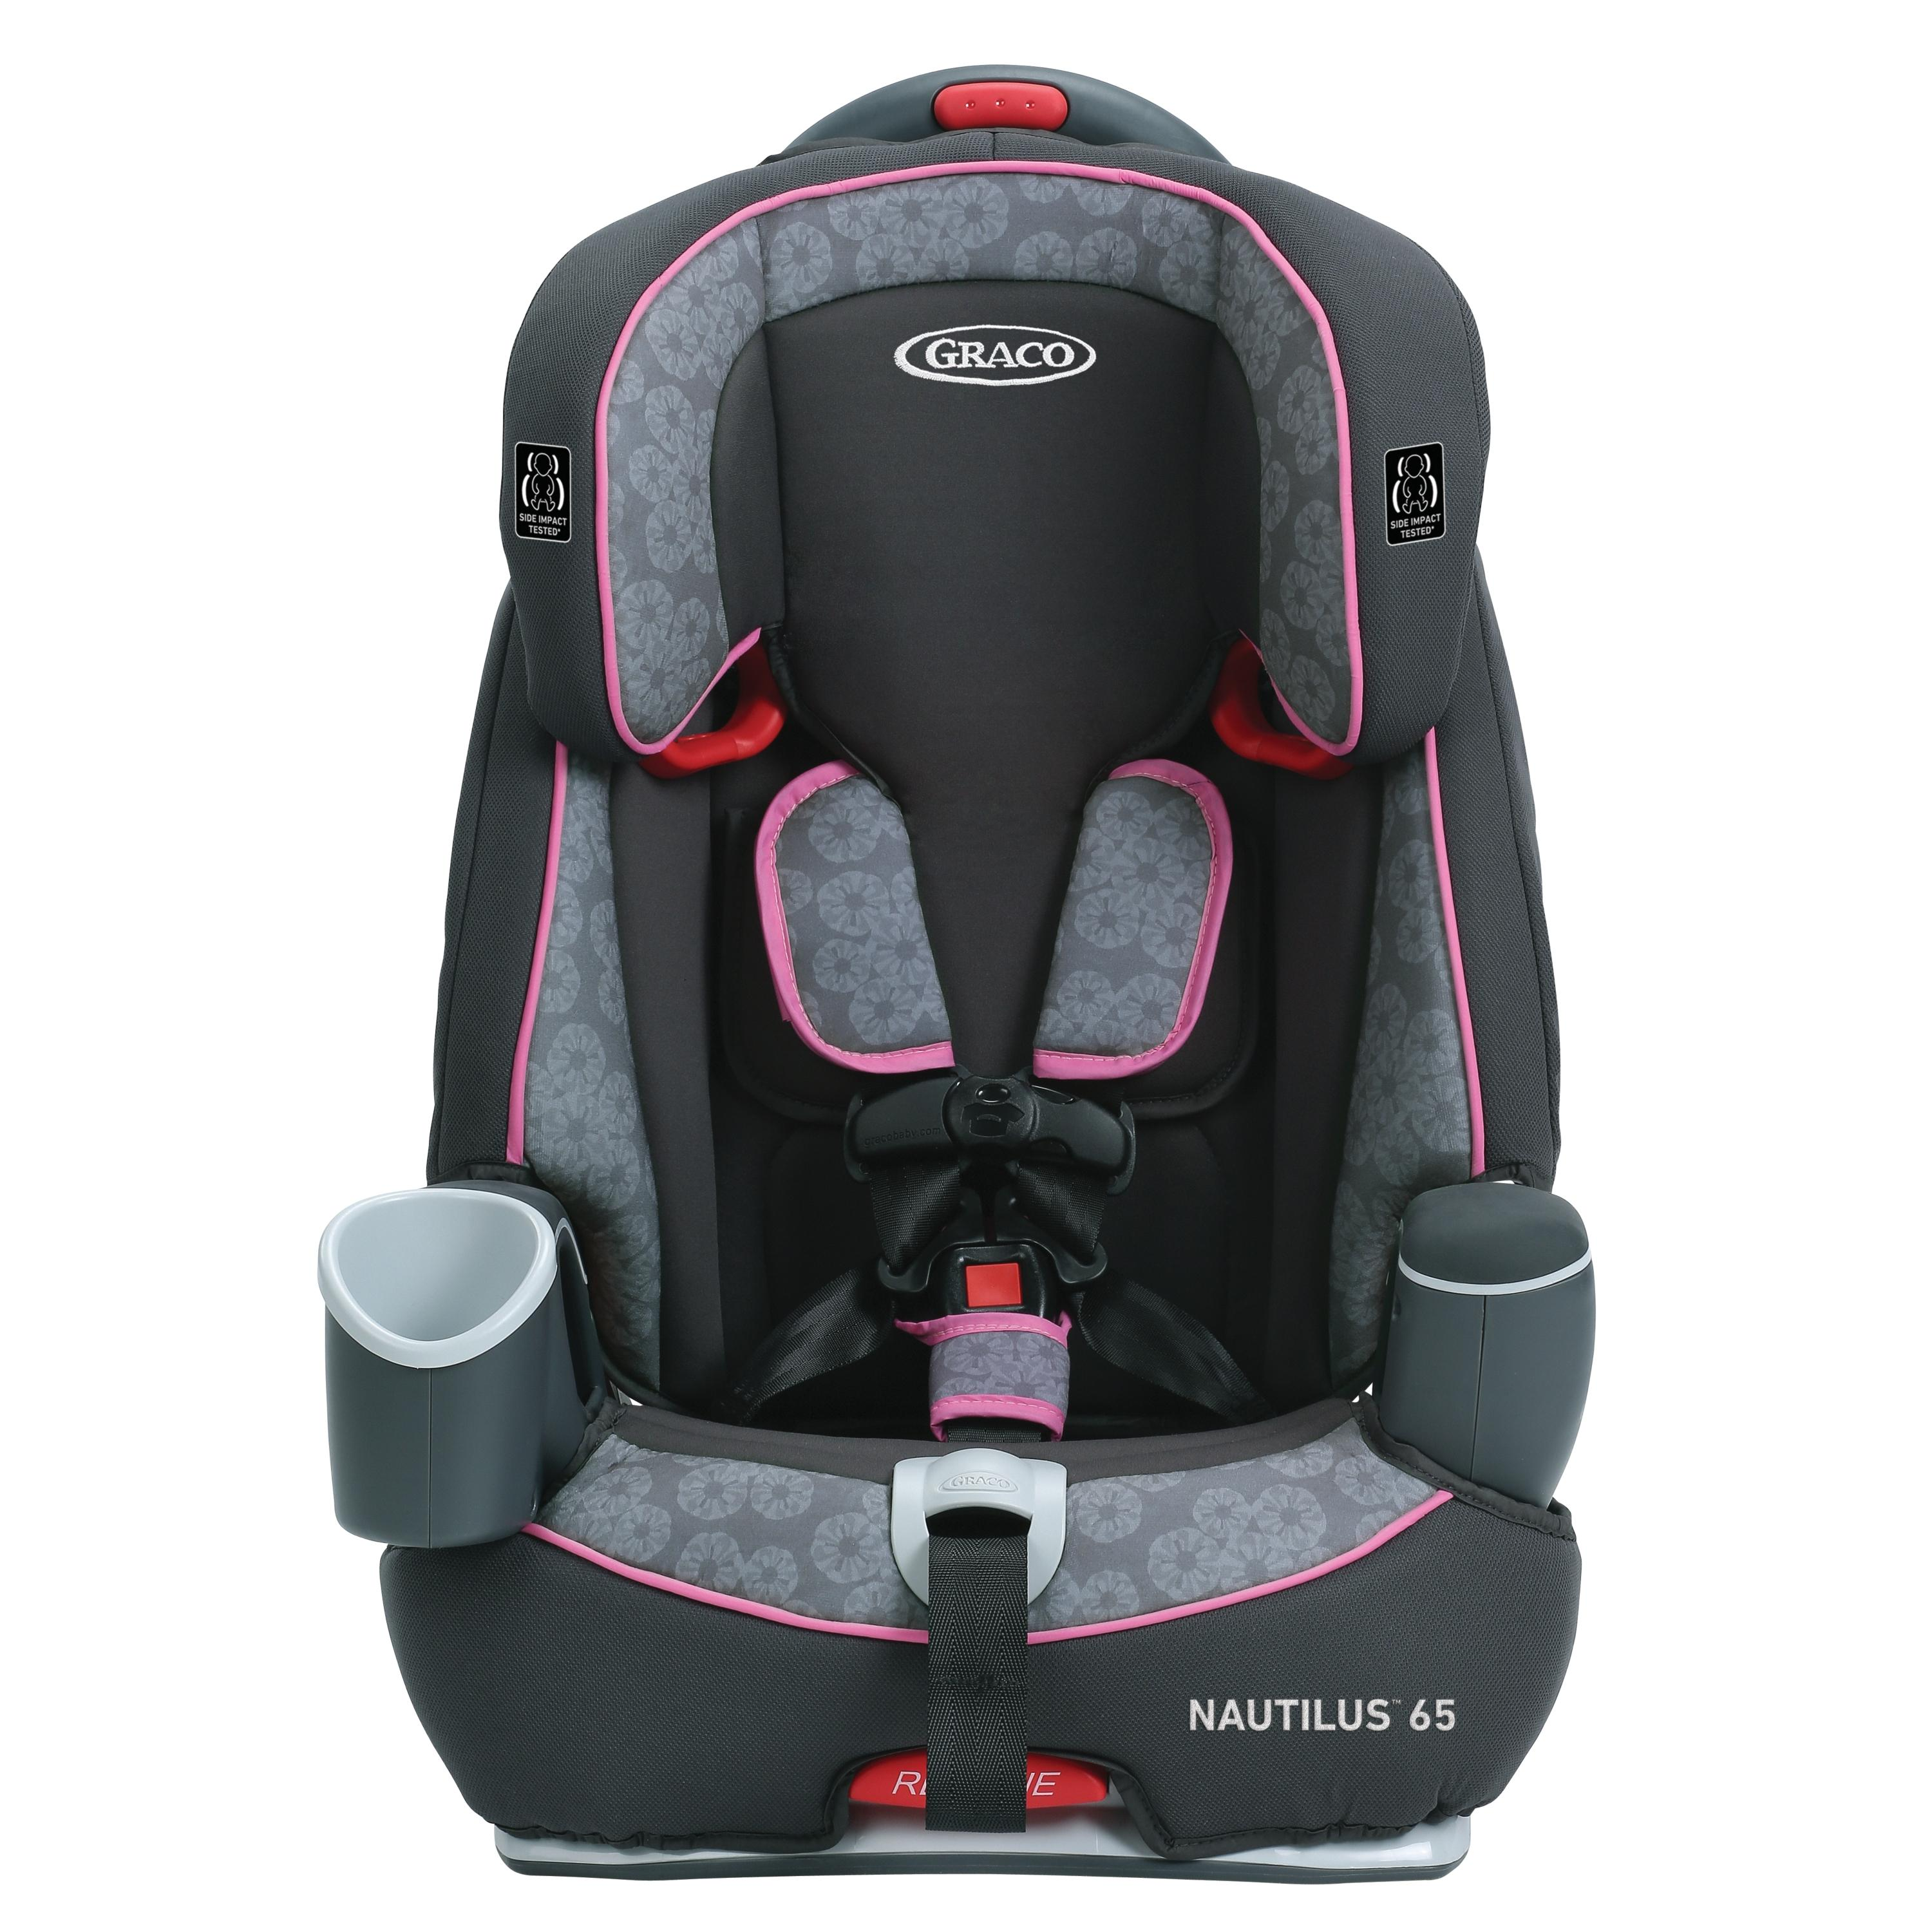 graco nautilus 65 3 in 1 harness booster sylvia baby. Black Bedroom Furniture Sets. Home Design Ideas